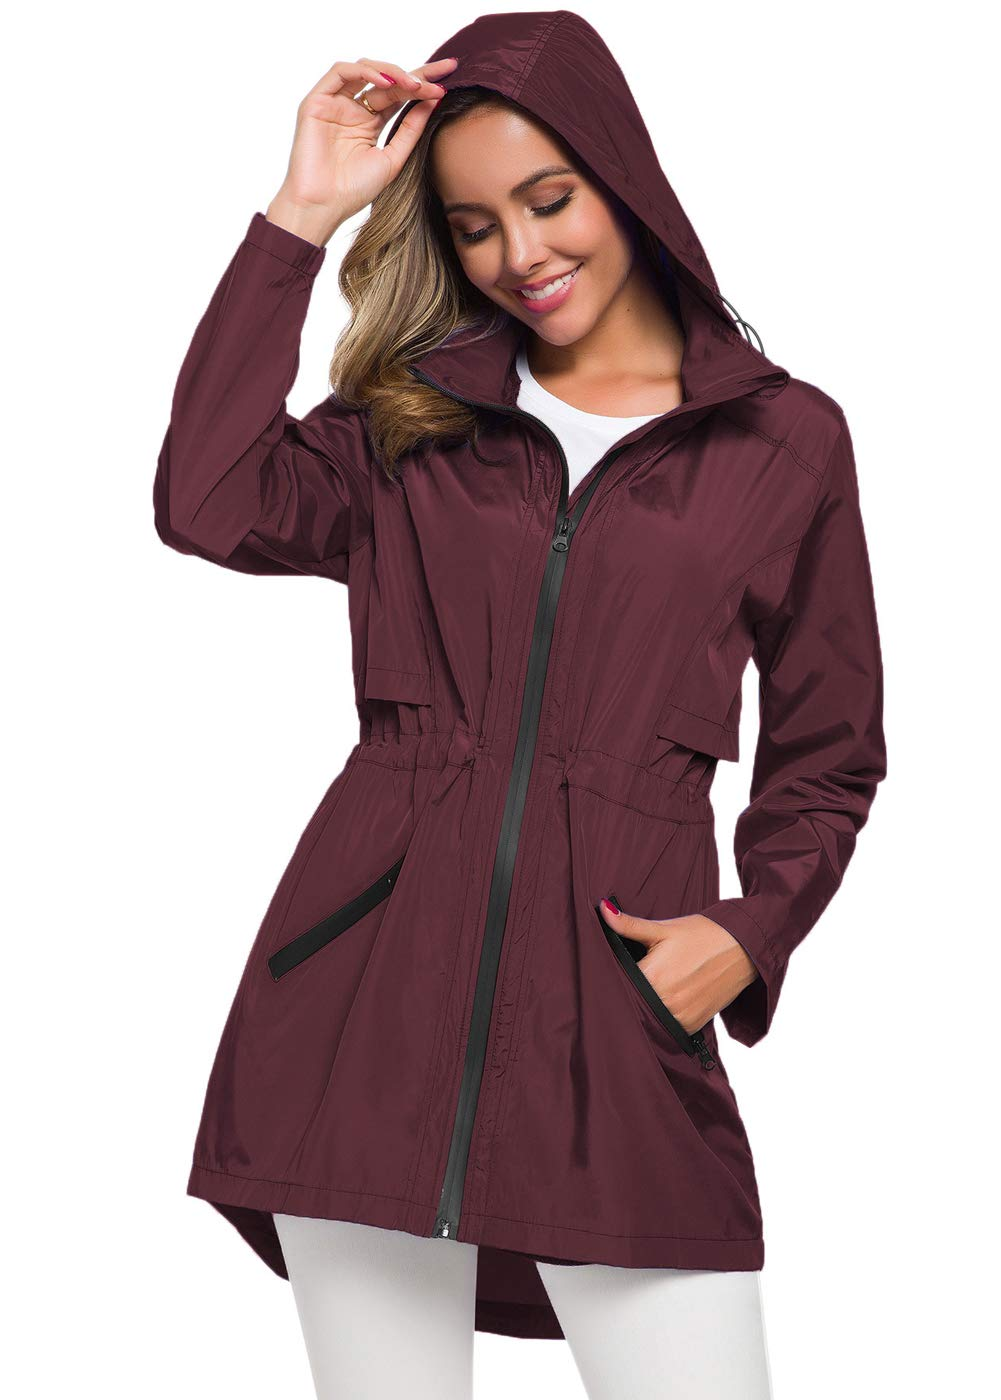 Avoogue Rain Jacket Women Waterproof with Hood Rain Coats for Travel Windbreaker Wine Red XXL by Avoogue